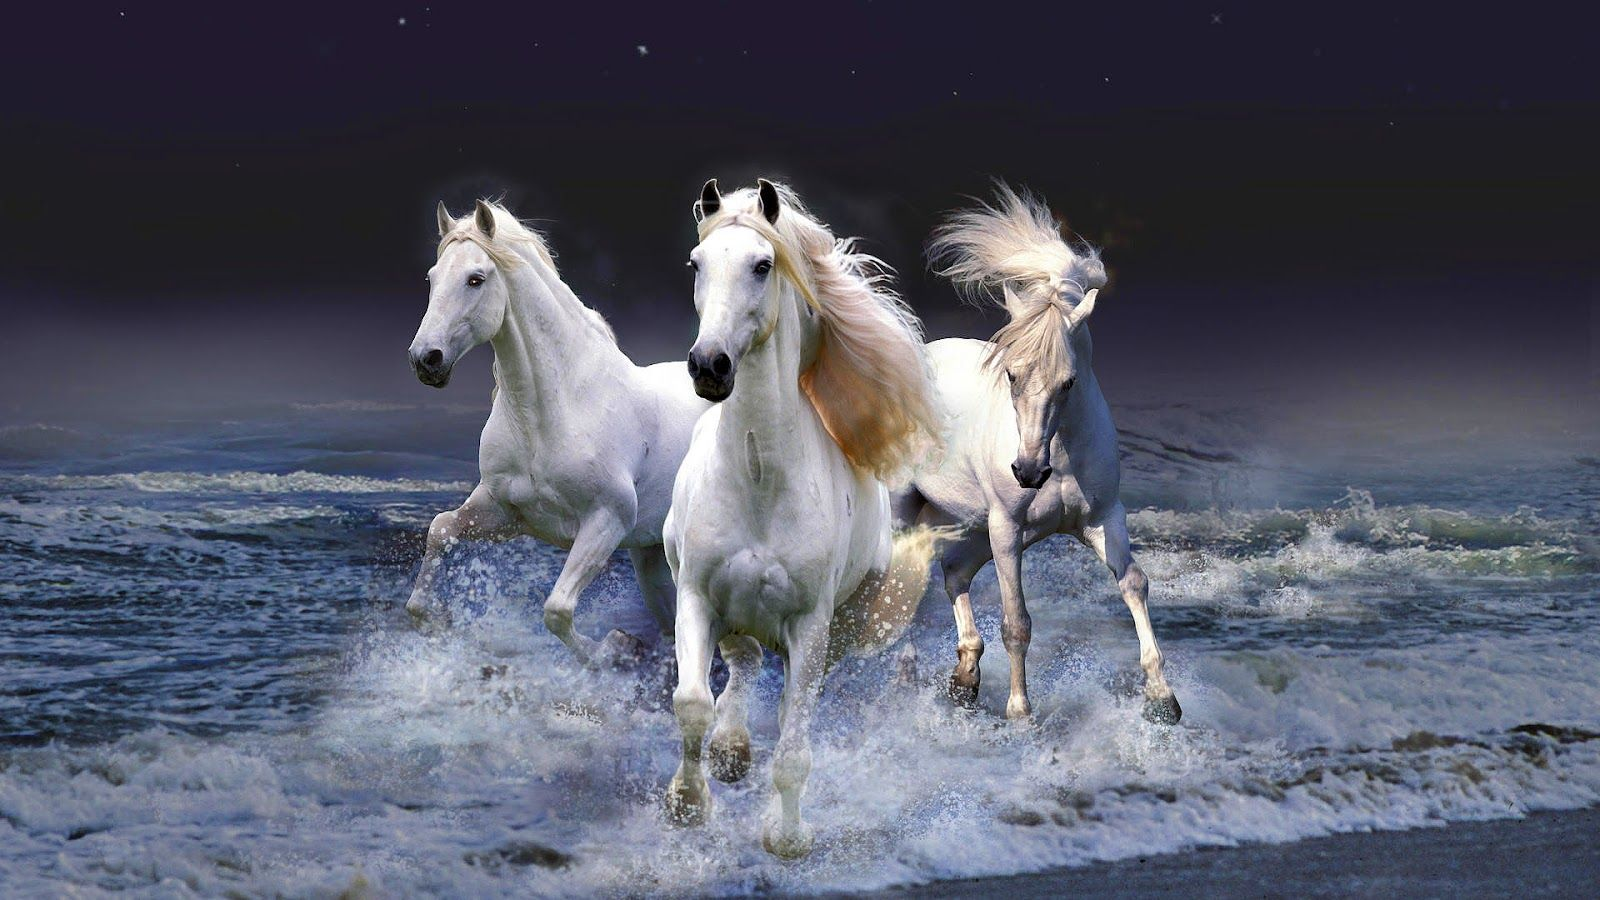 Must see Wallpaper Horse Stunning - 185c5f5f6f136a02b4e4de34a60e3746  Collection_465140.jpg